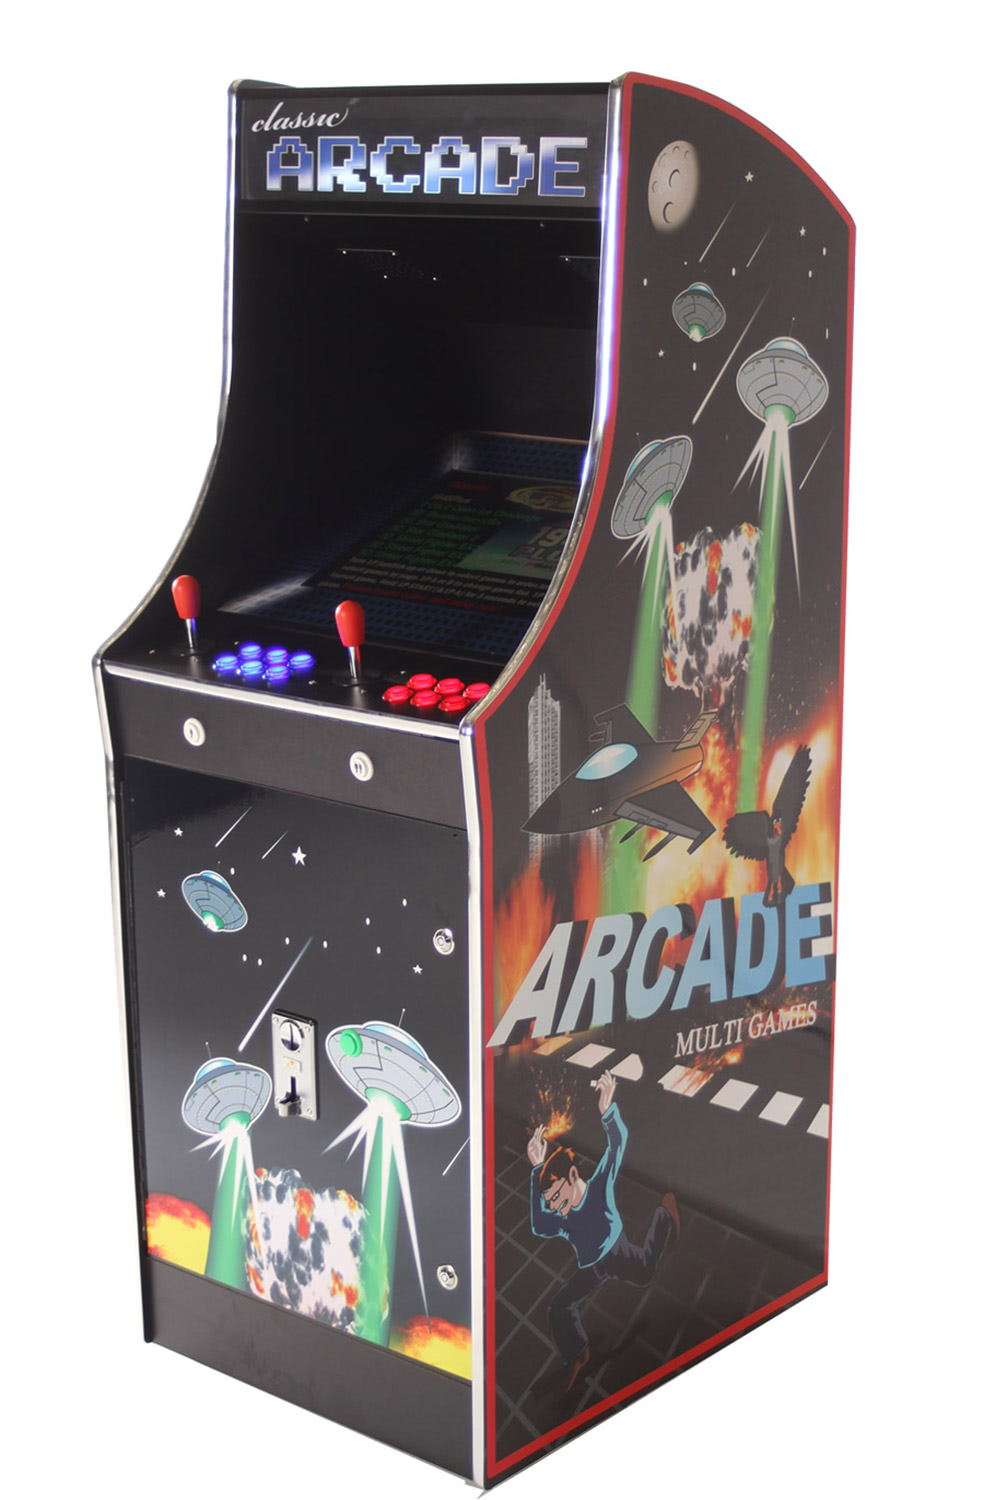 Cosmic III 2000-in-1 Multi Game Arcade Machine | Liberty Games